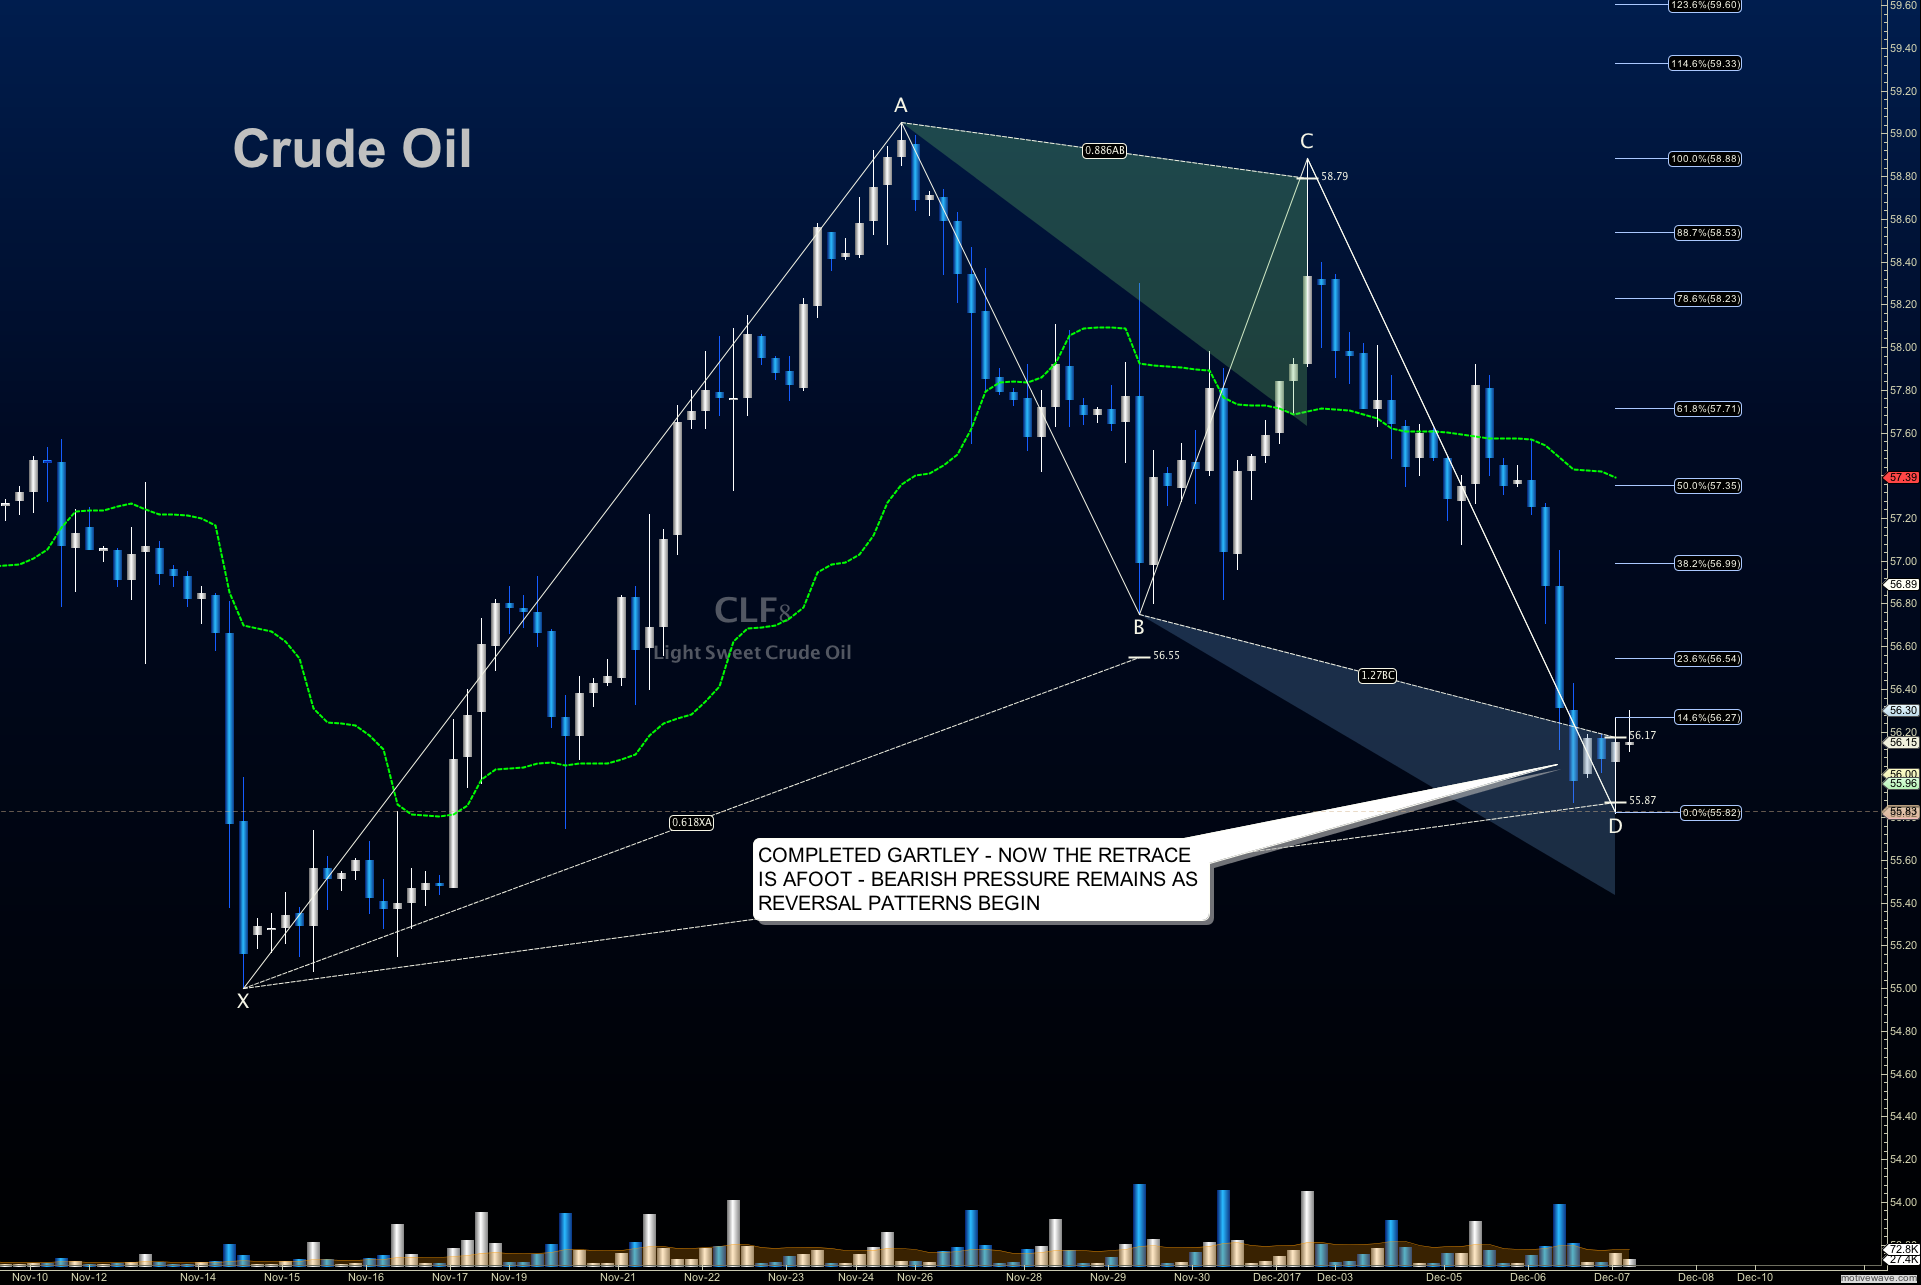 crude oil futures trading_higher_december 7_investing_news